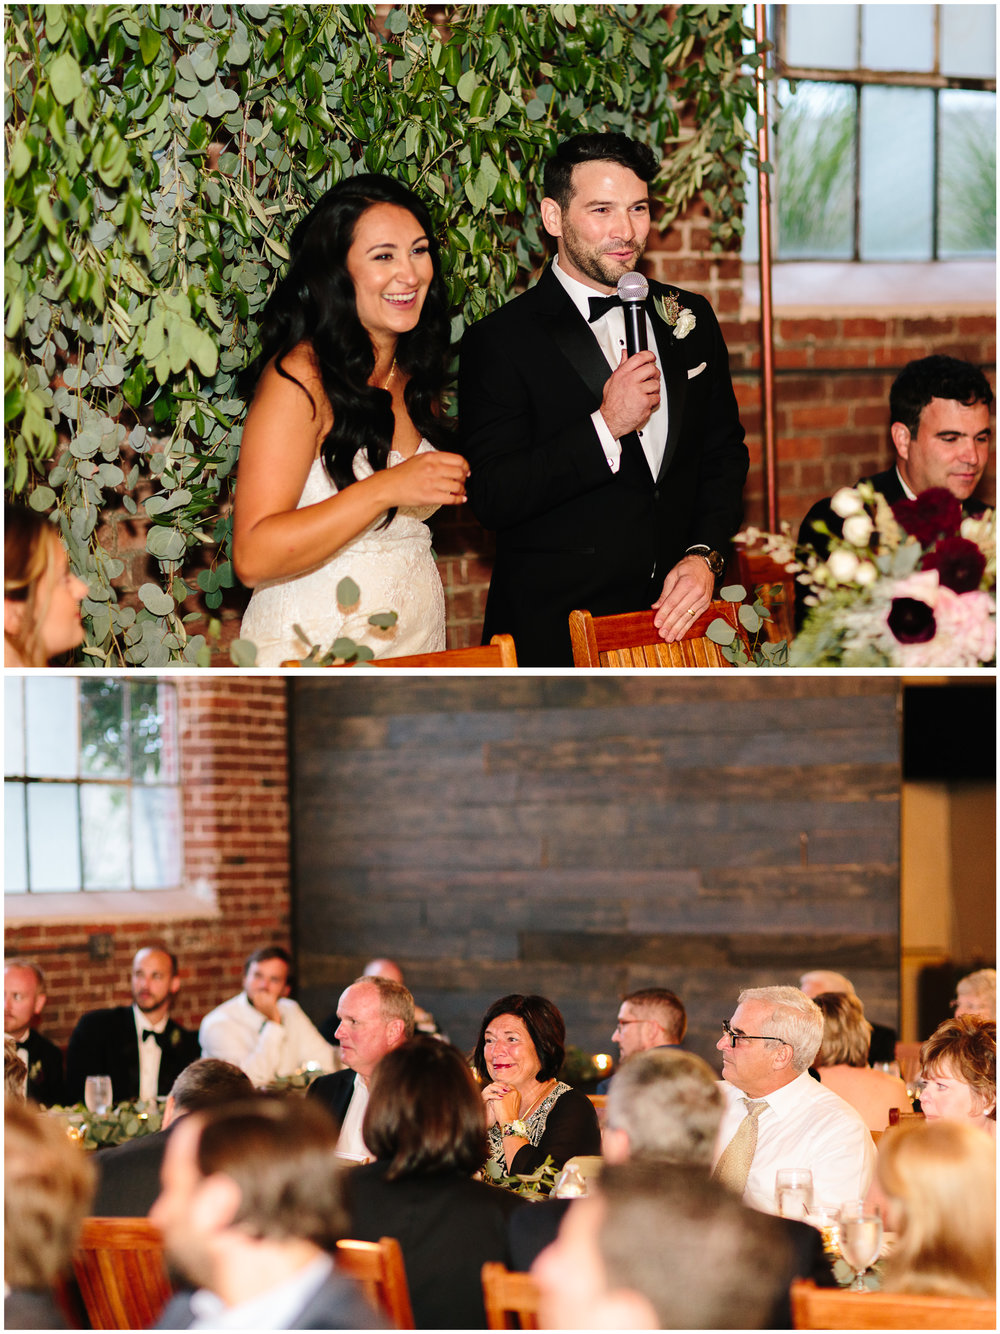 moss_denver_wedding_62.jpg